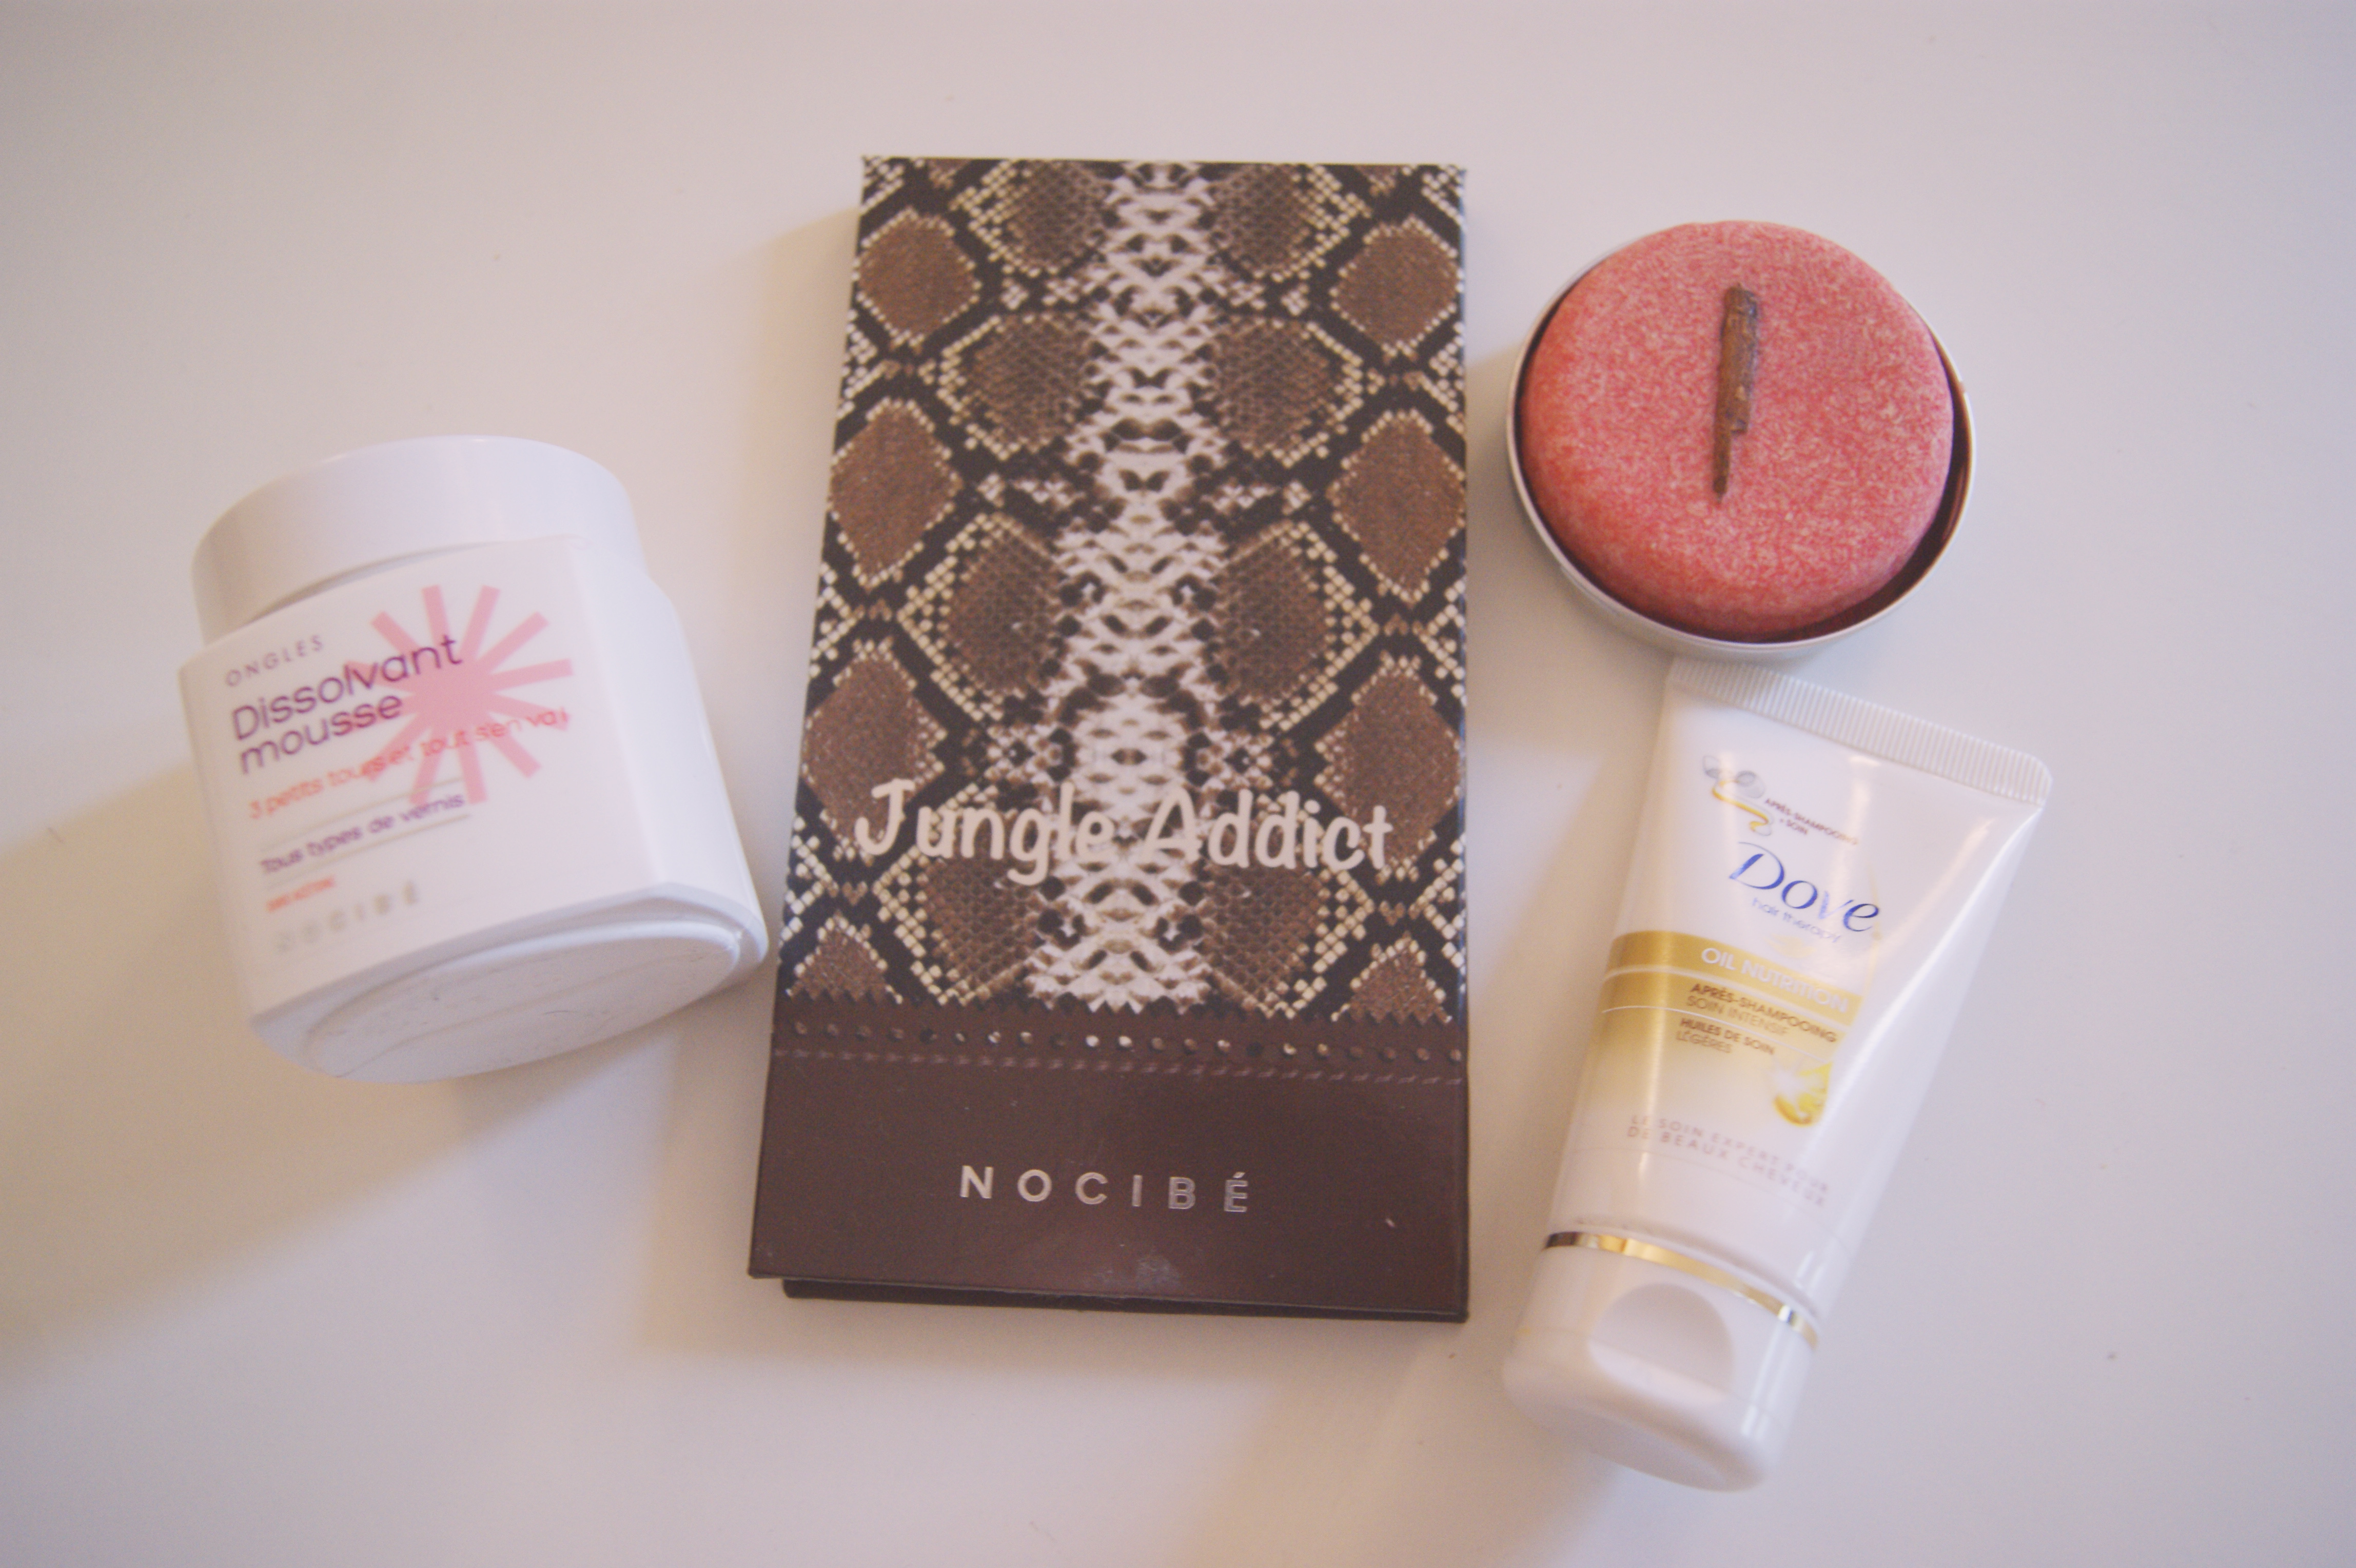 produits de beaut sympas petit prix